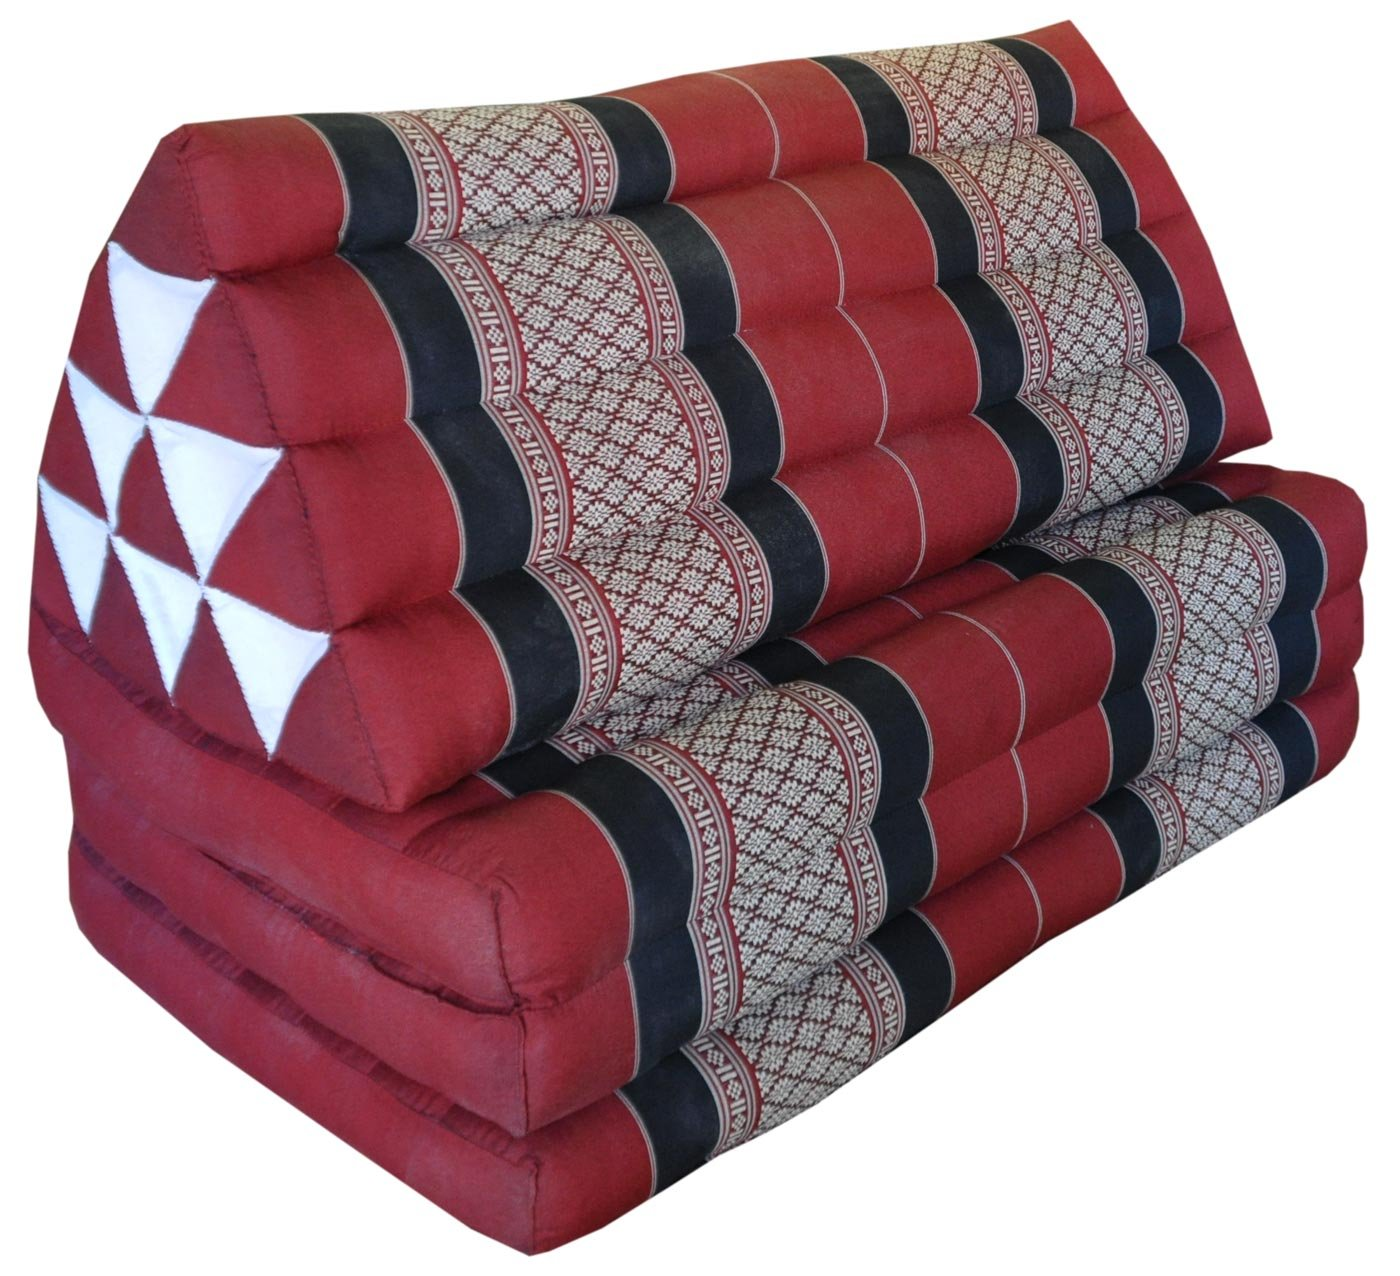 Thai triangle cushion/mattress XXL, with 3 folding seats, burgundy/red, sofa, relaxation, beach, pool, meditation, yoga, made in Thailand. (82318) by Wilai GmbH